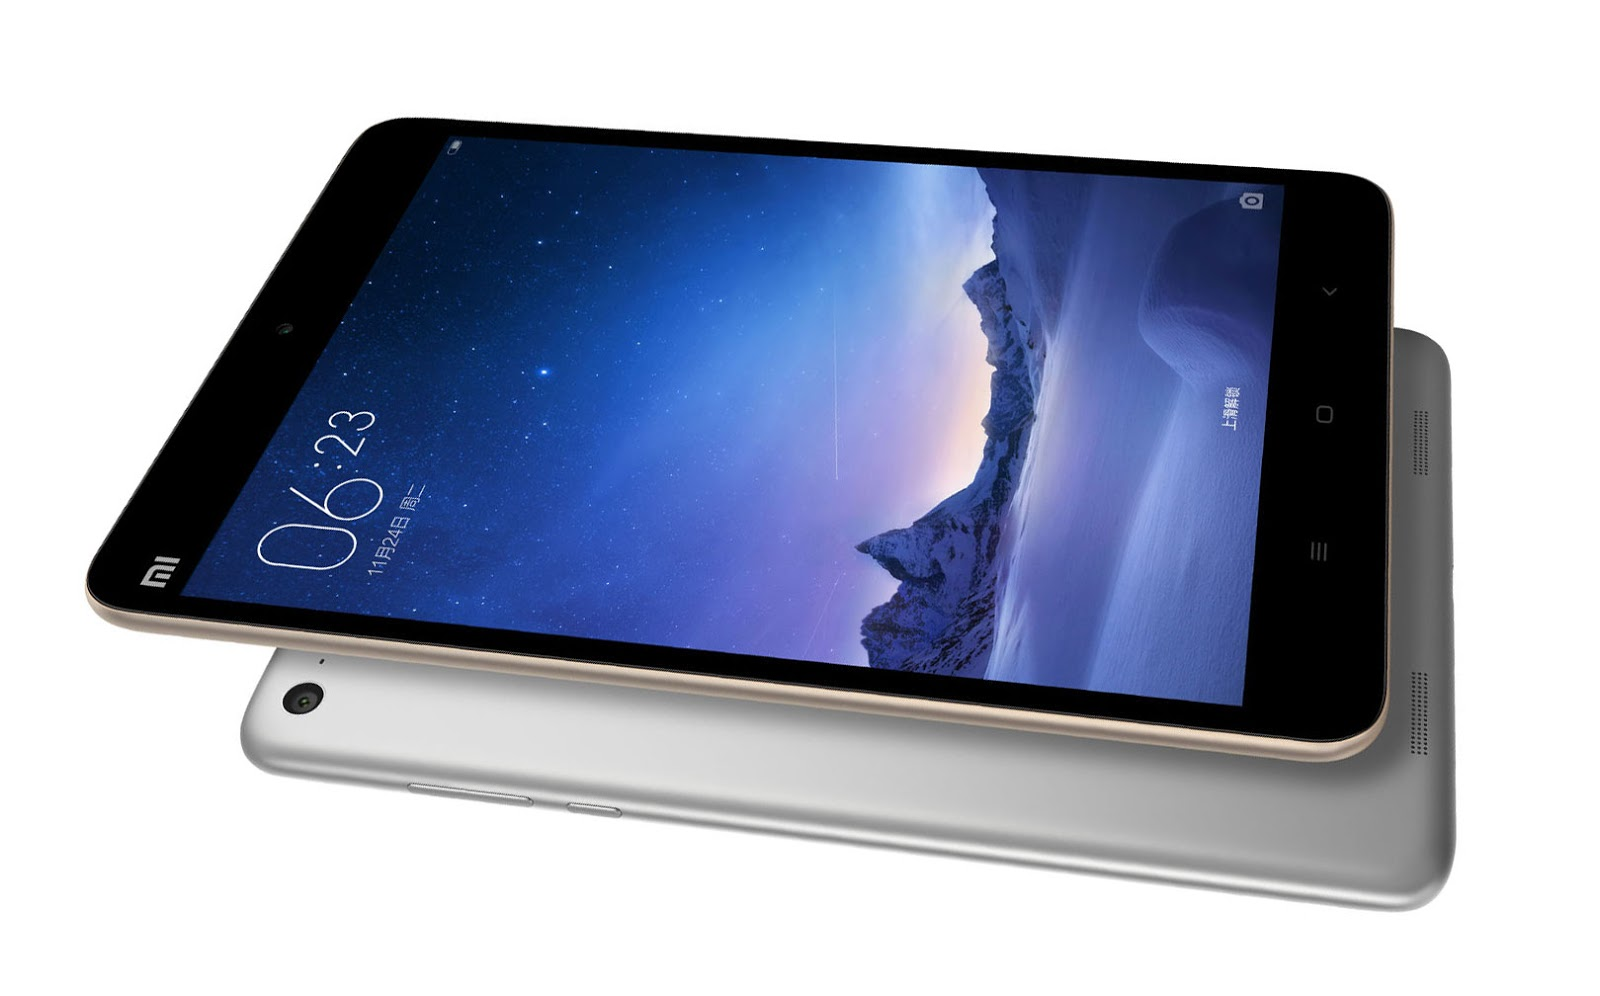 Xiaomi Is Particularly Acclaimed For Smart Phone Models And Now Preparing To Introduce Mi Pad 4 A New Member Of Series About Tablet That